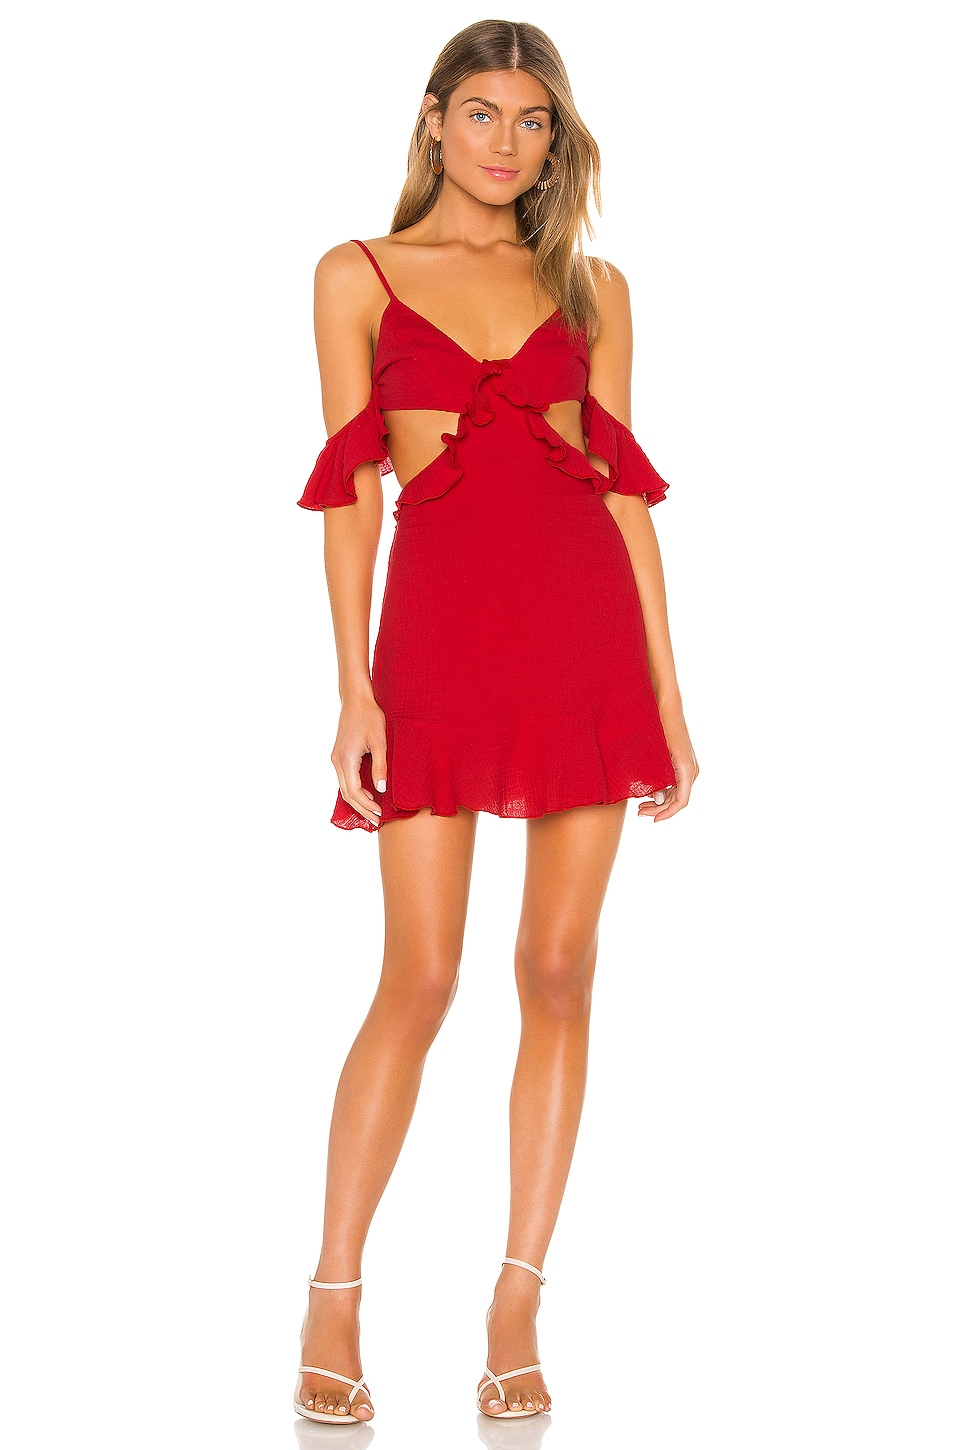 MAJORELLE Tango Mini Dress in Red